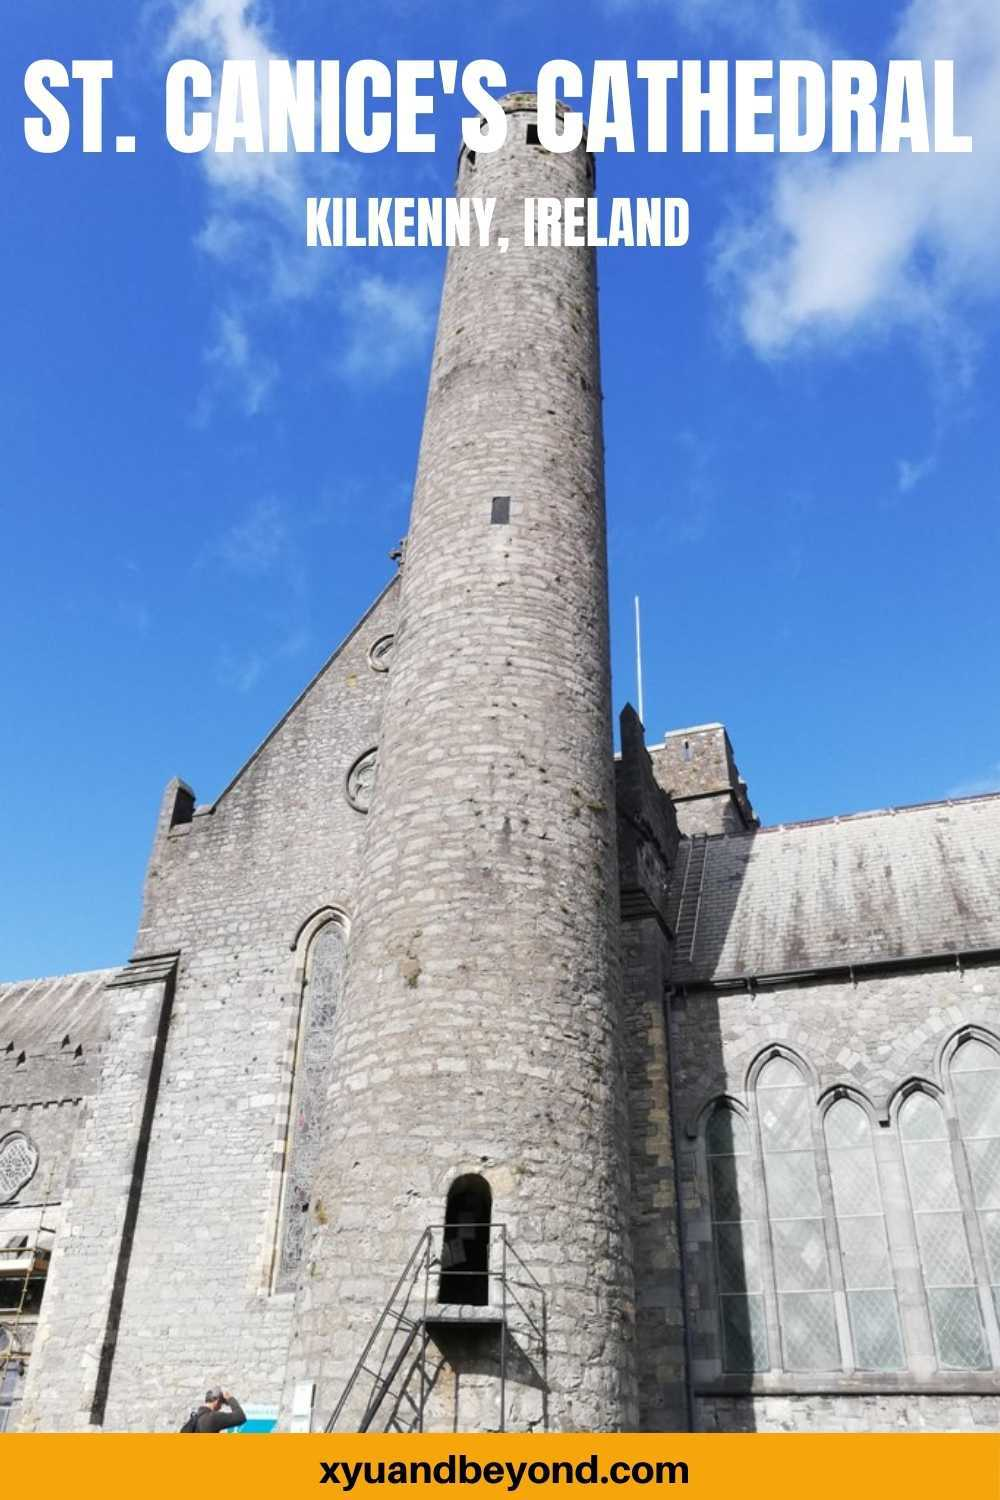 Exploring St. Canice's Cathedral in Kilkenny